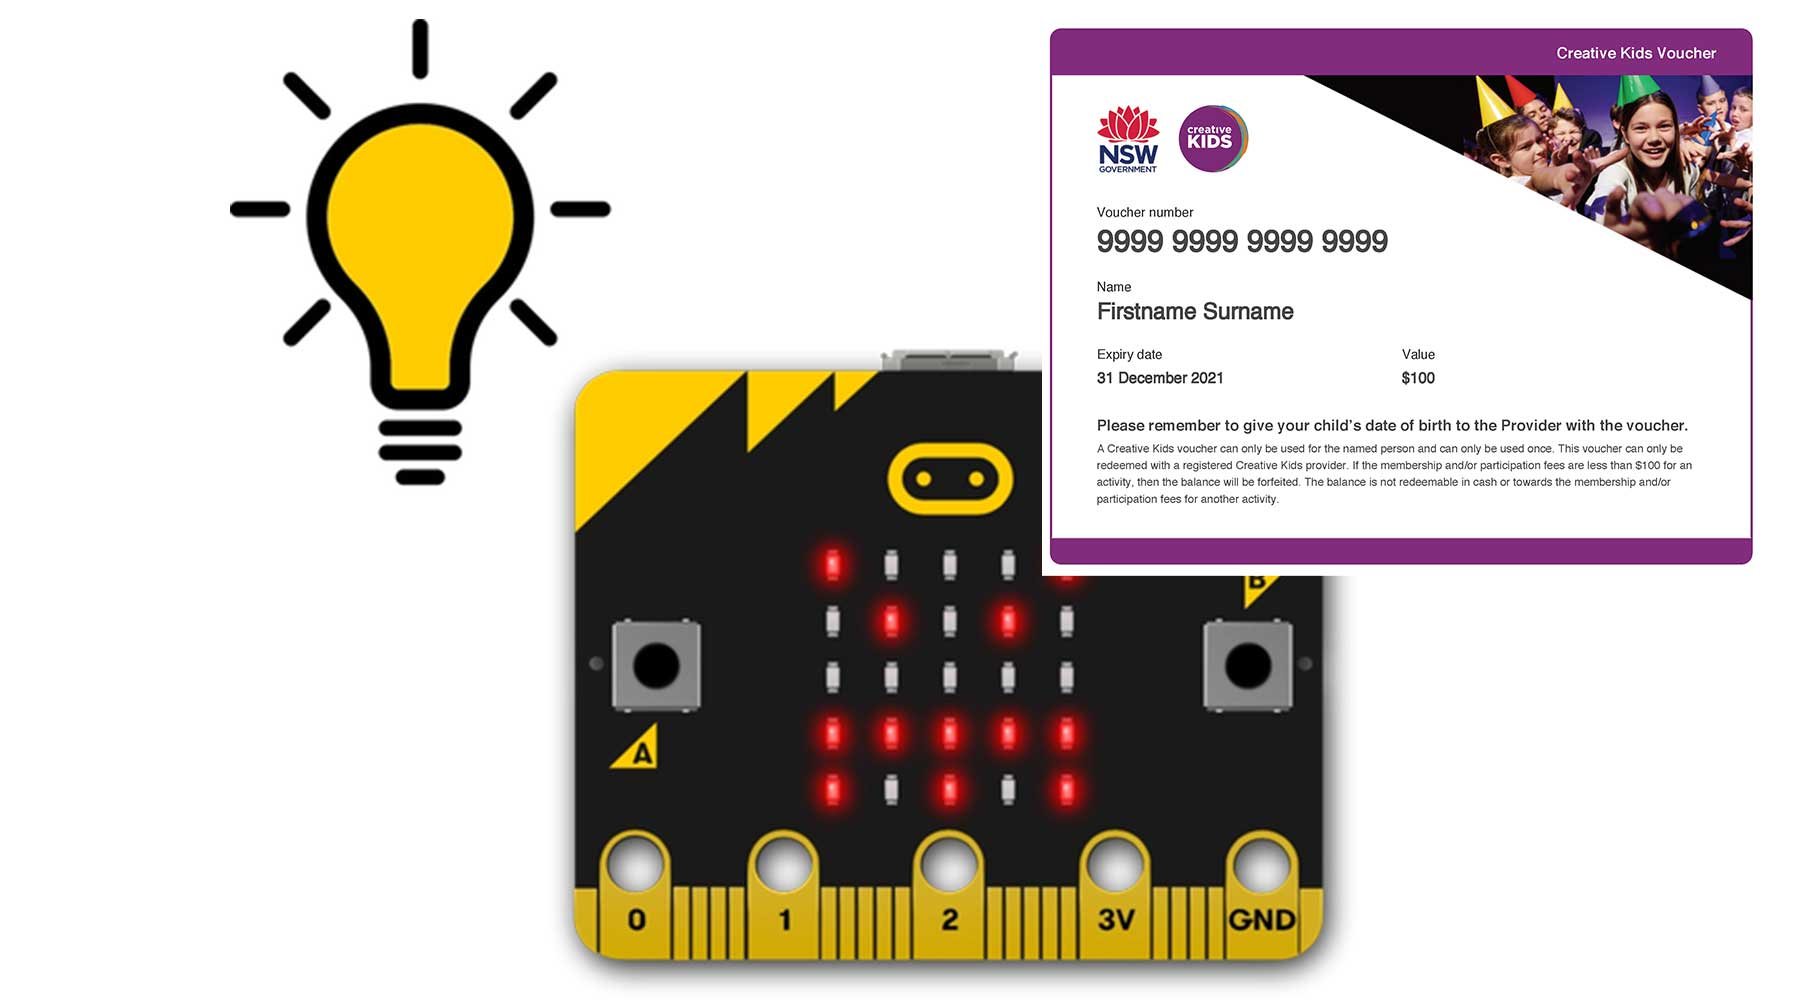 Creative Kids Online Academy - micro:bit Level 1 with Creative Kids Voucher